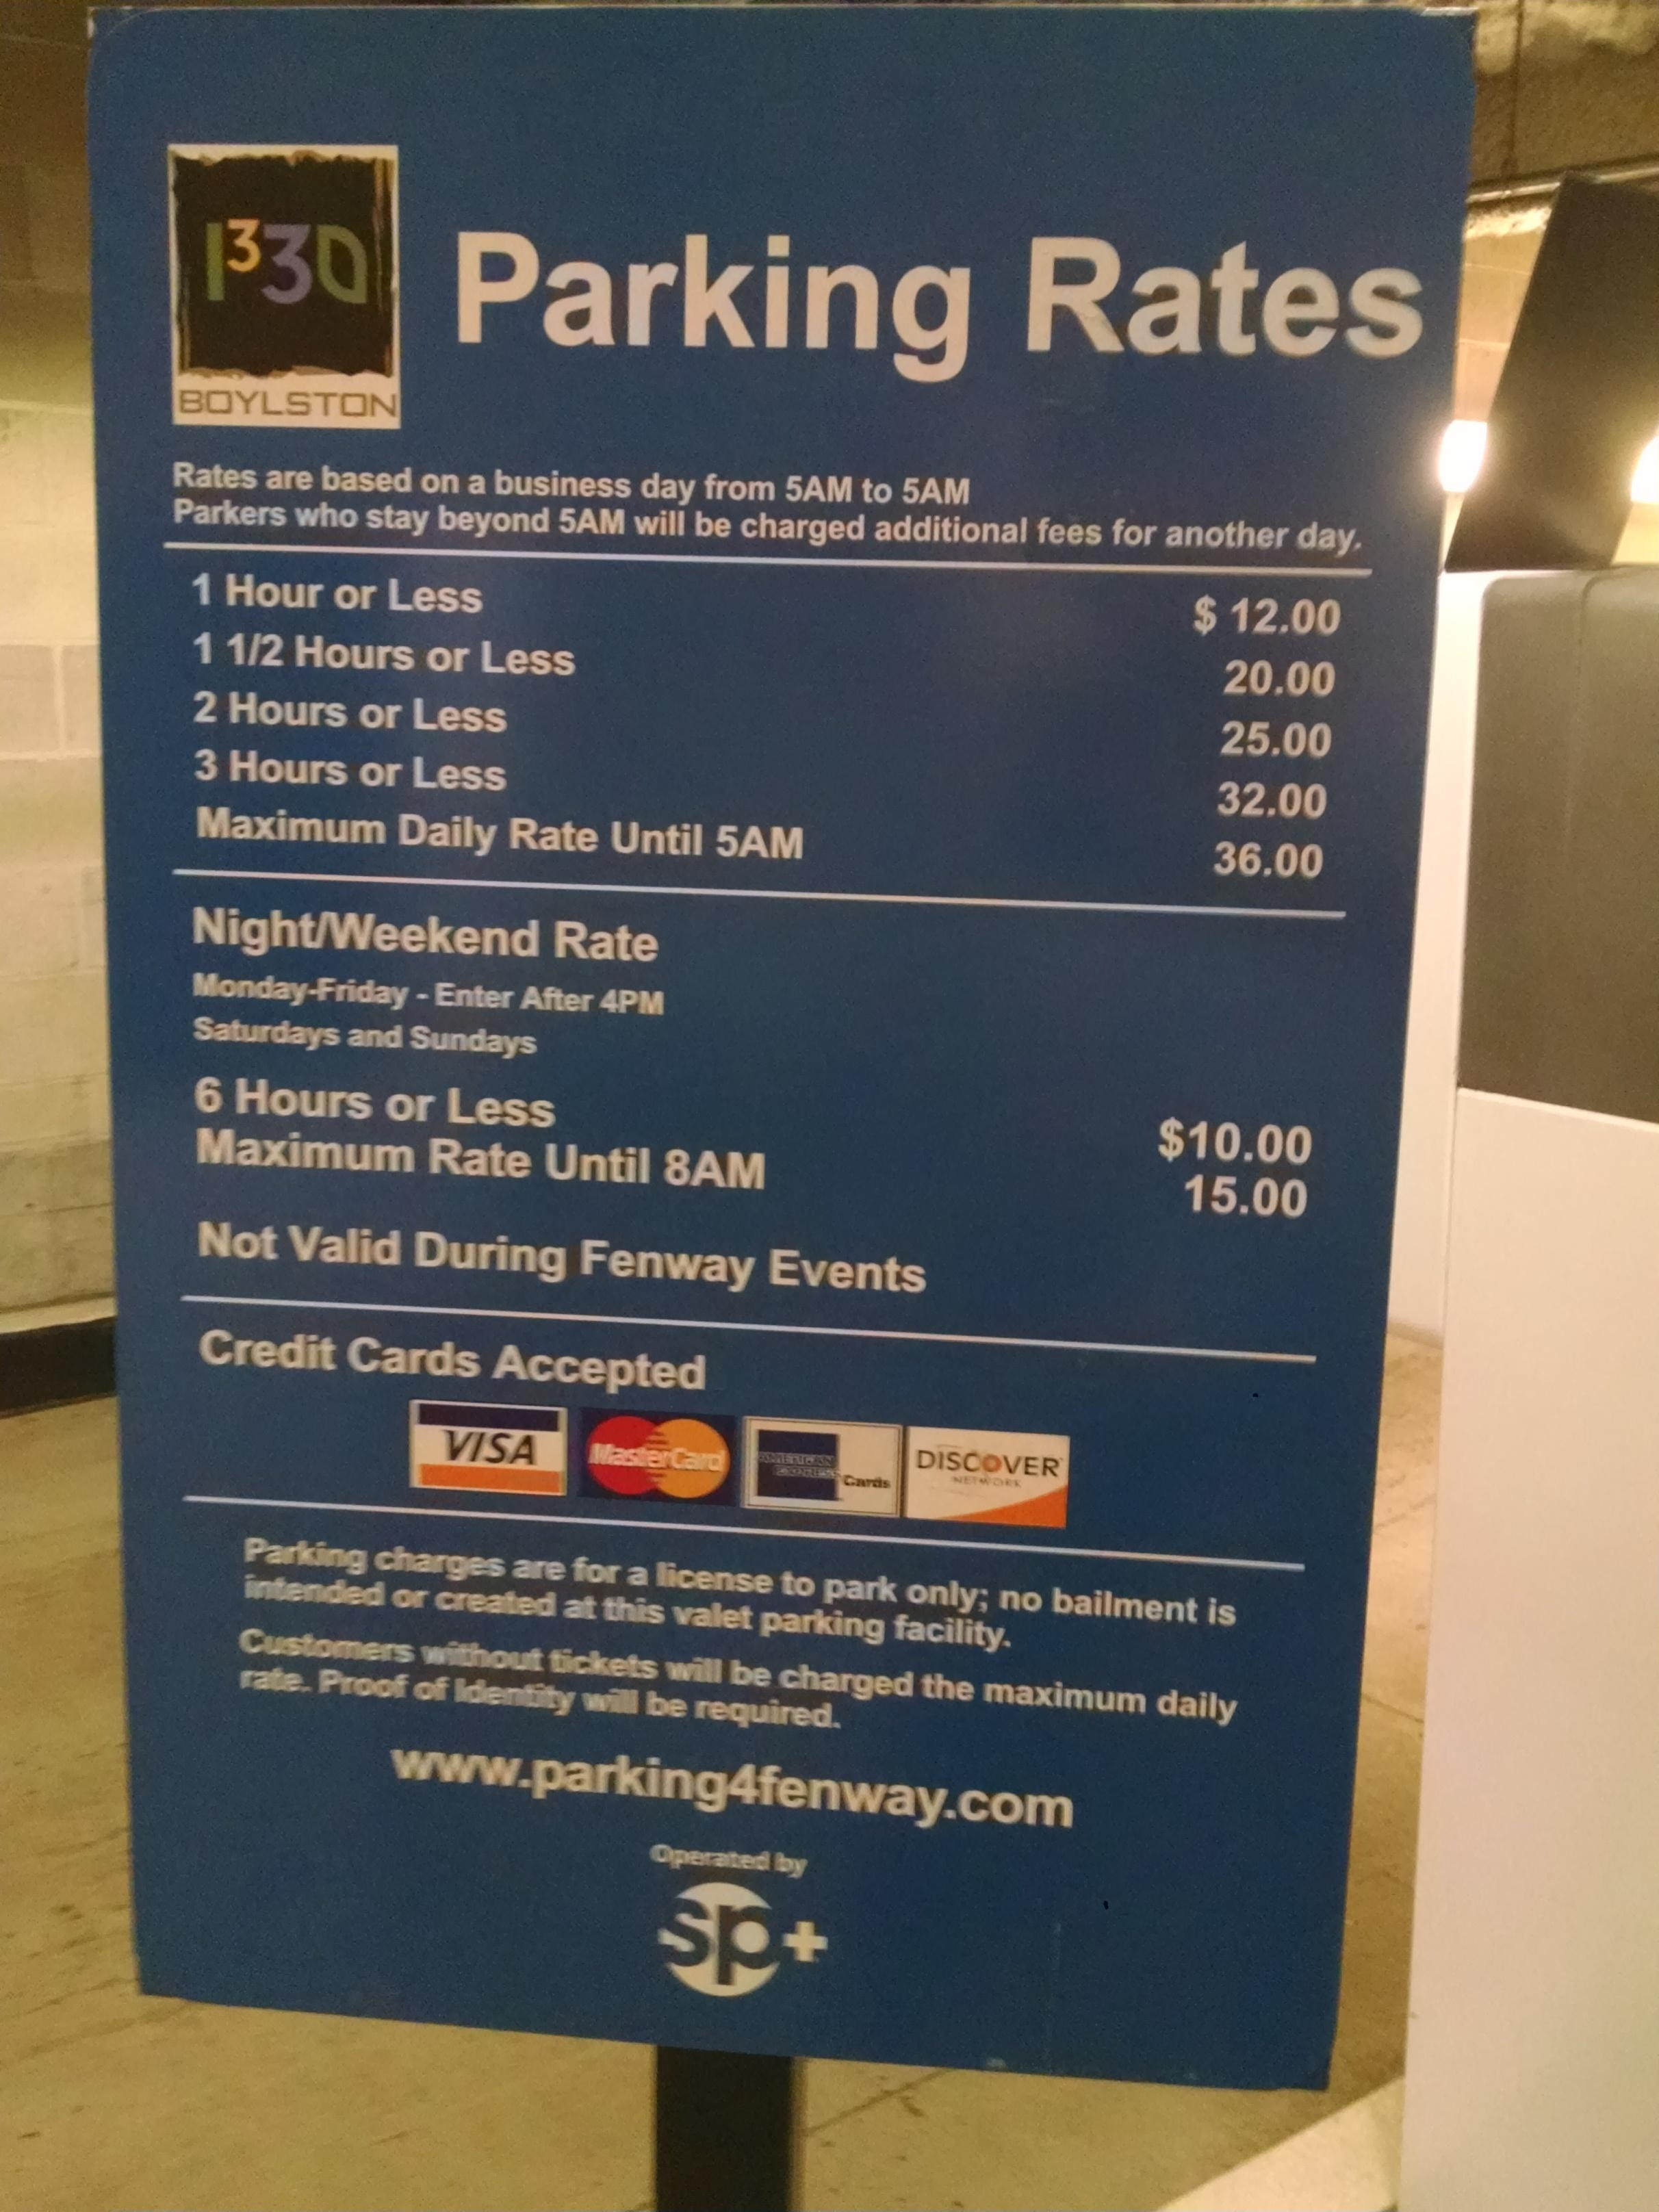 Cheapest Garage In Boston 1330 Boylston St Garage Parking In Boston Parkme